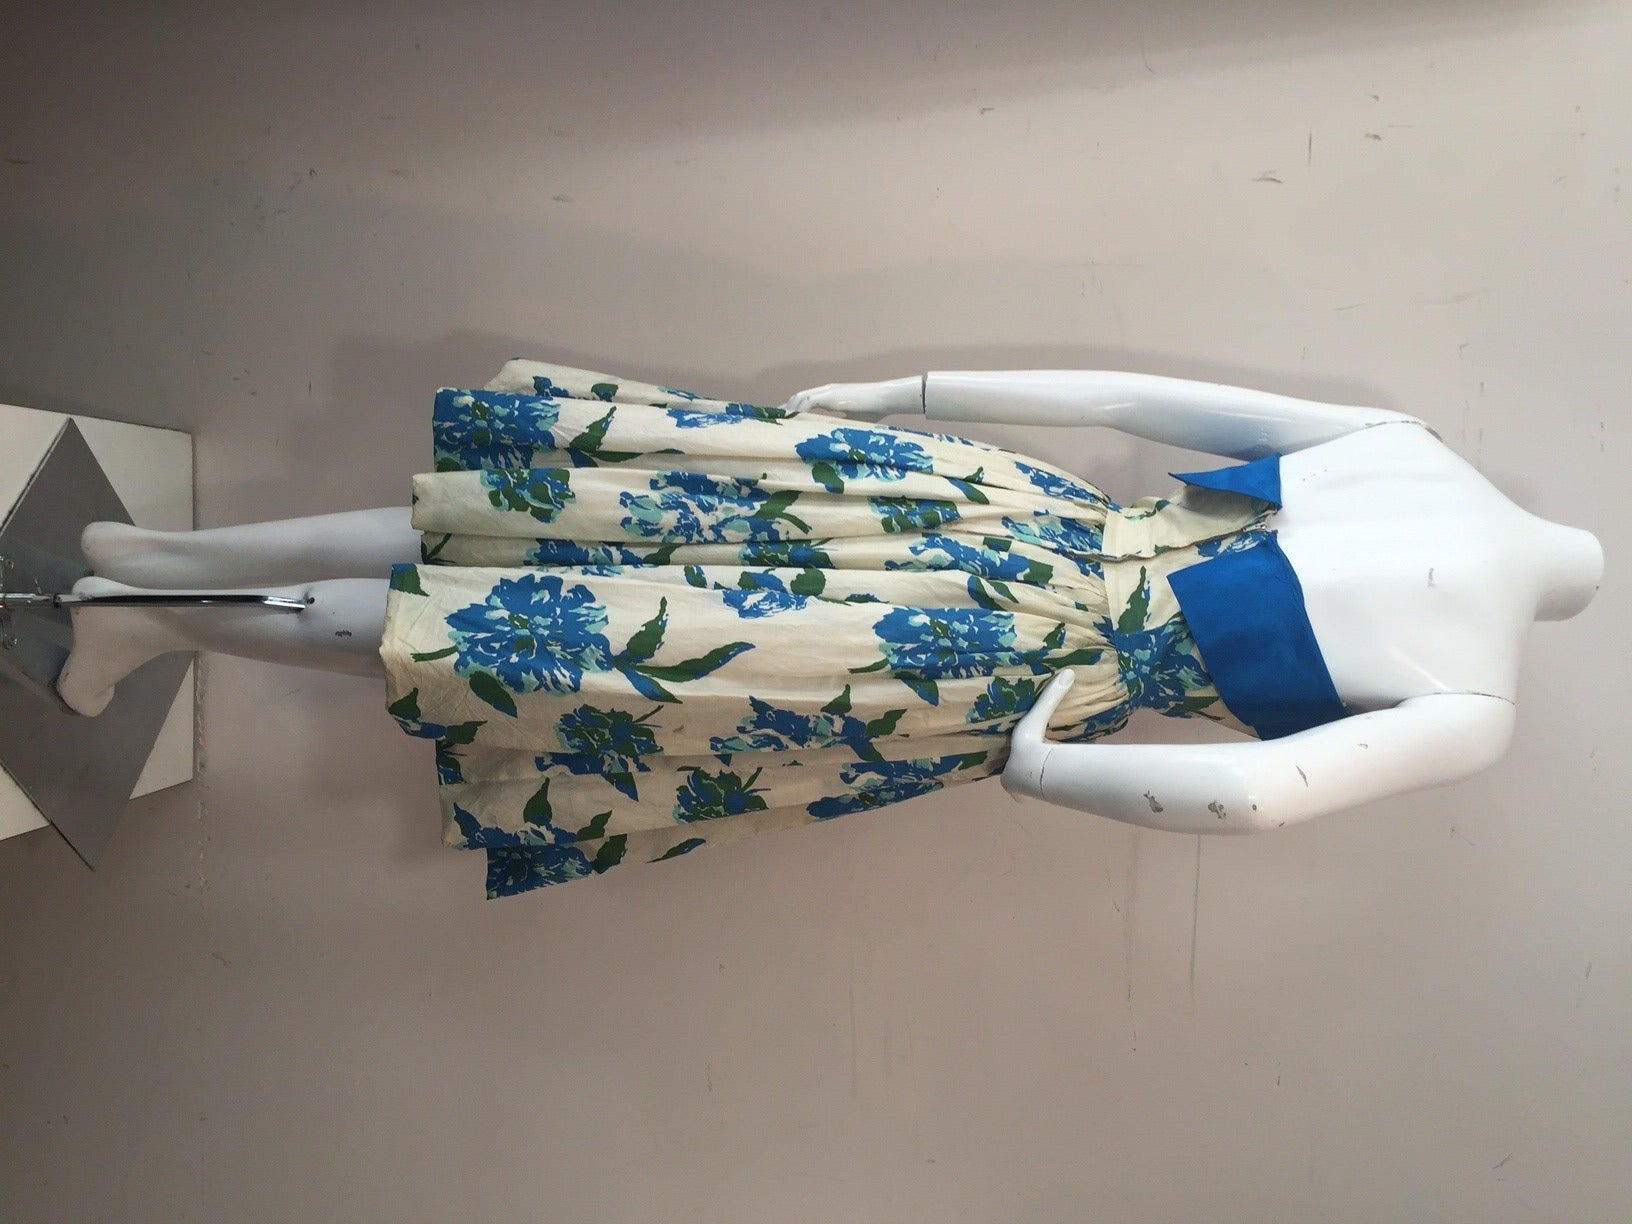 1950s Silk Floral Print Strapless Summer Dress in White, Blue and Green 2